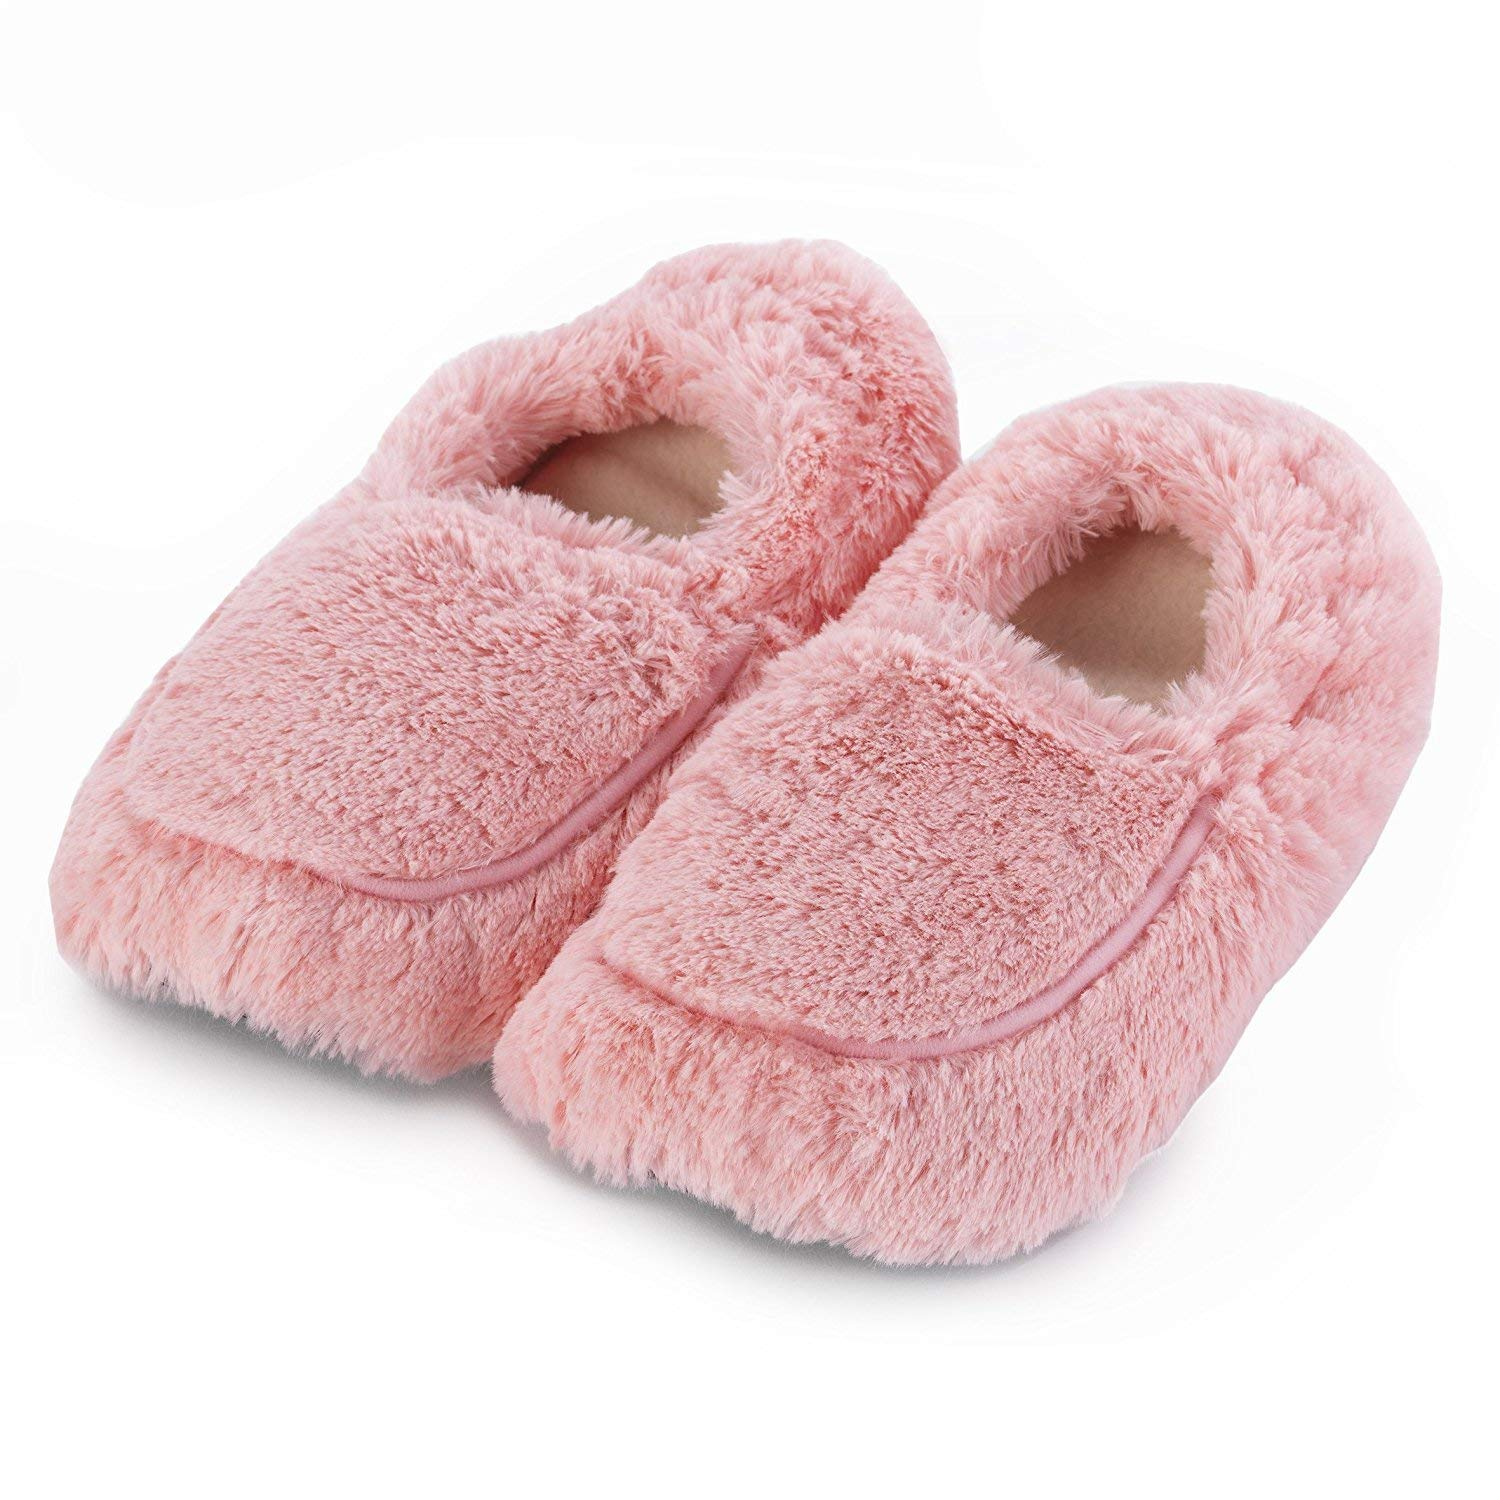 Intelex Fully Microwavable Luxury Cosy Slippers